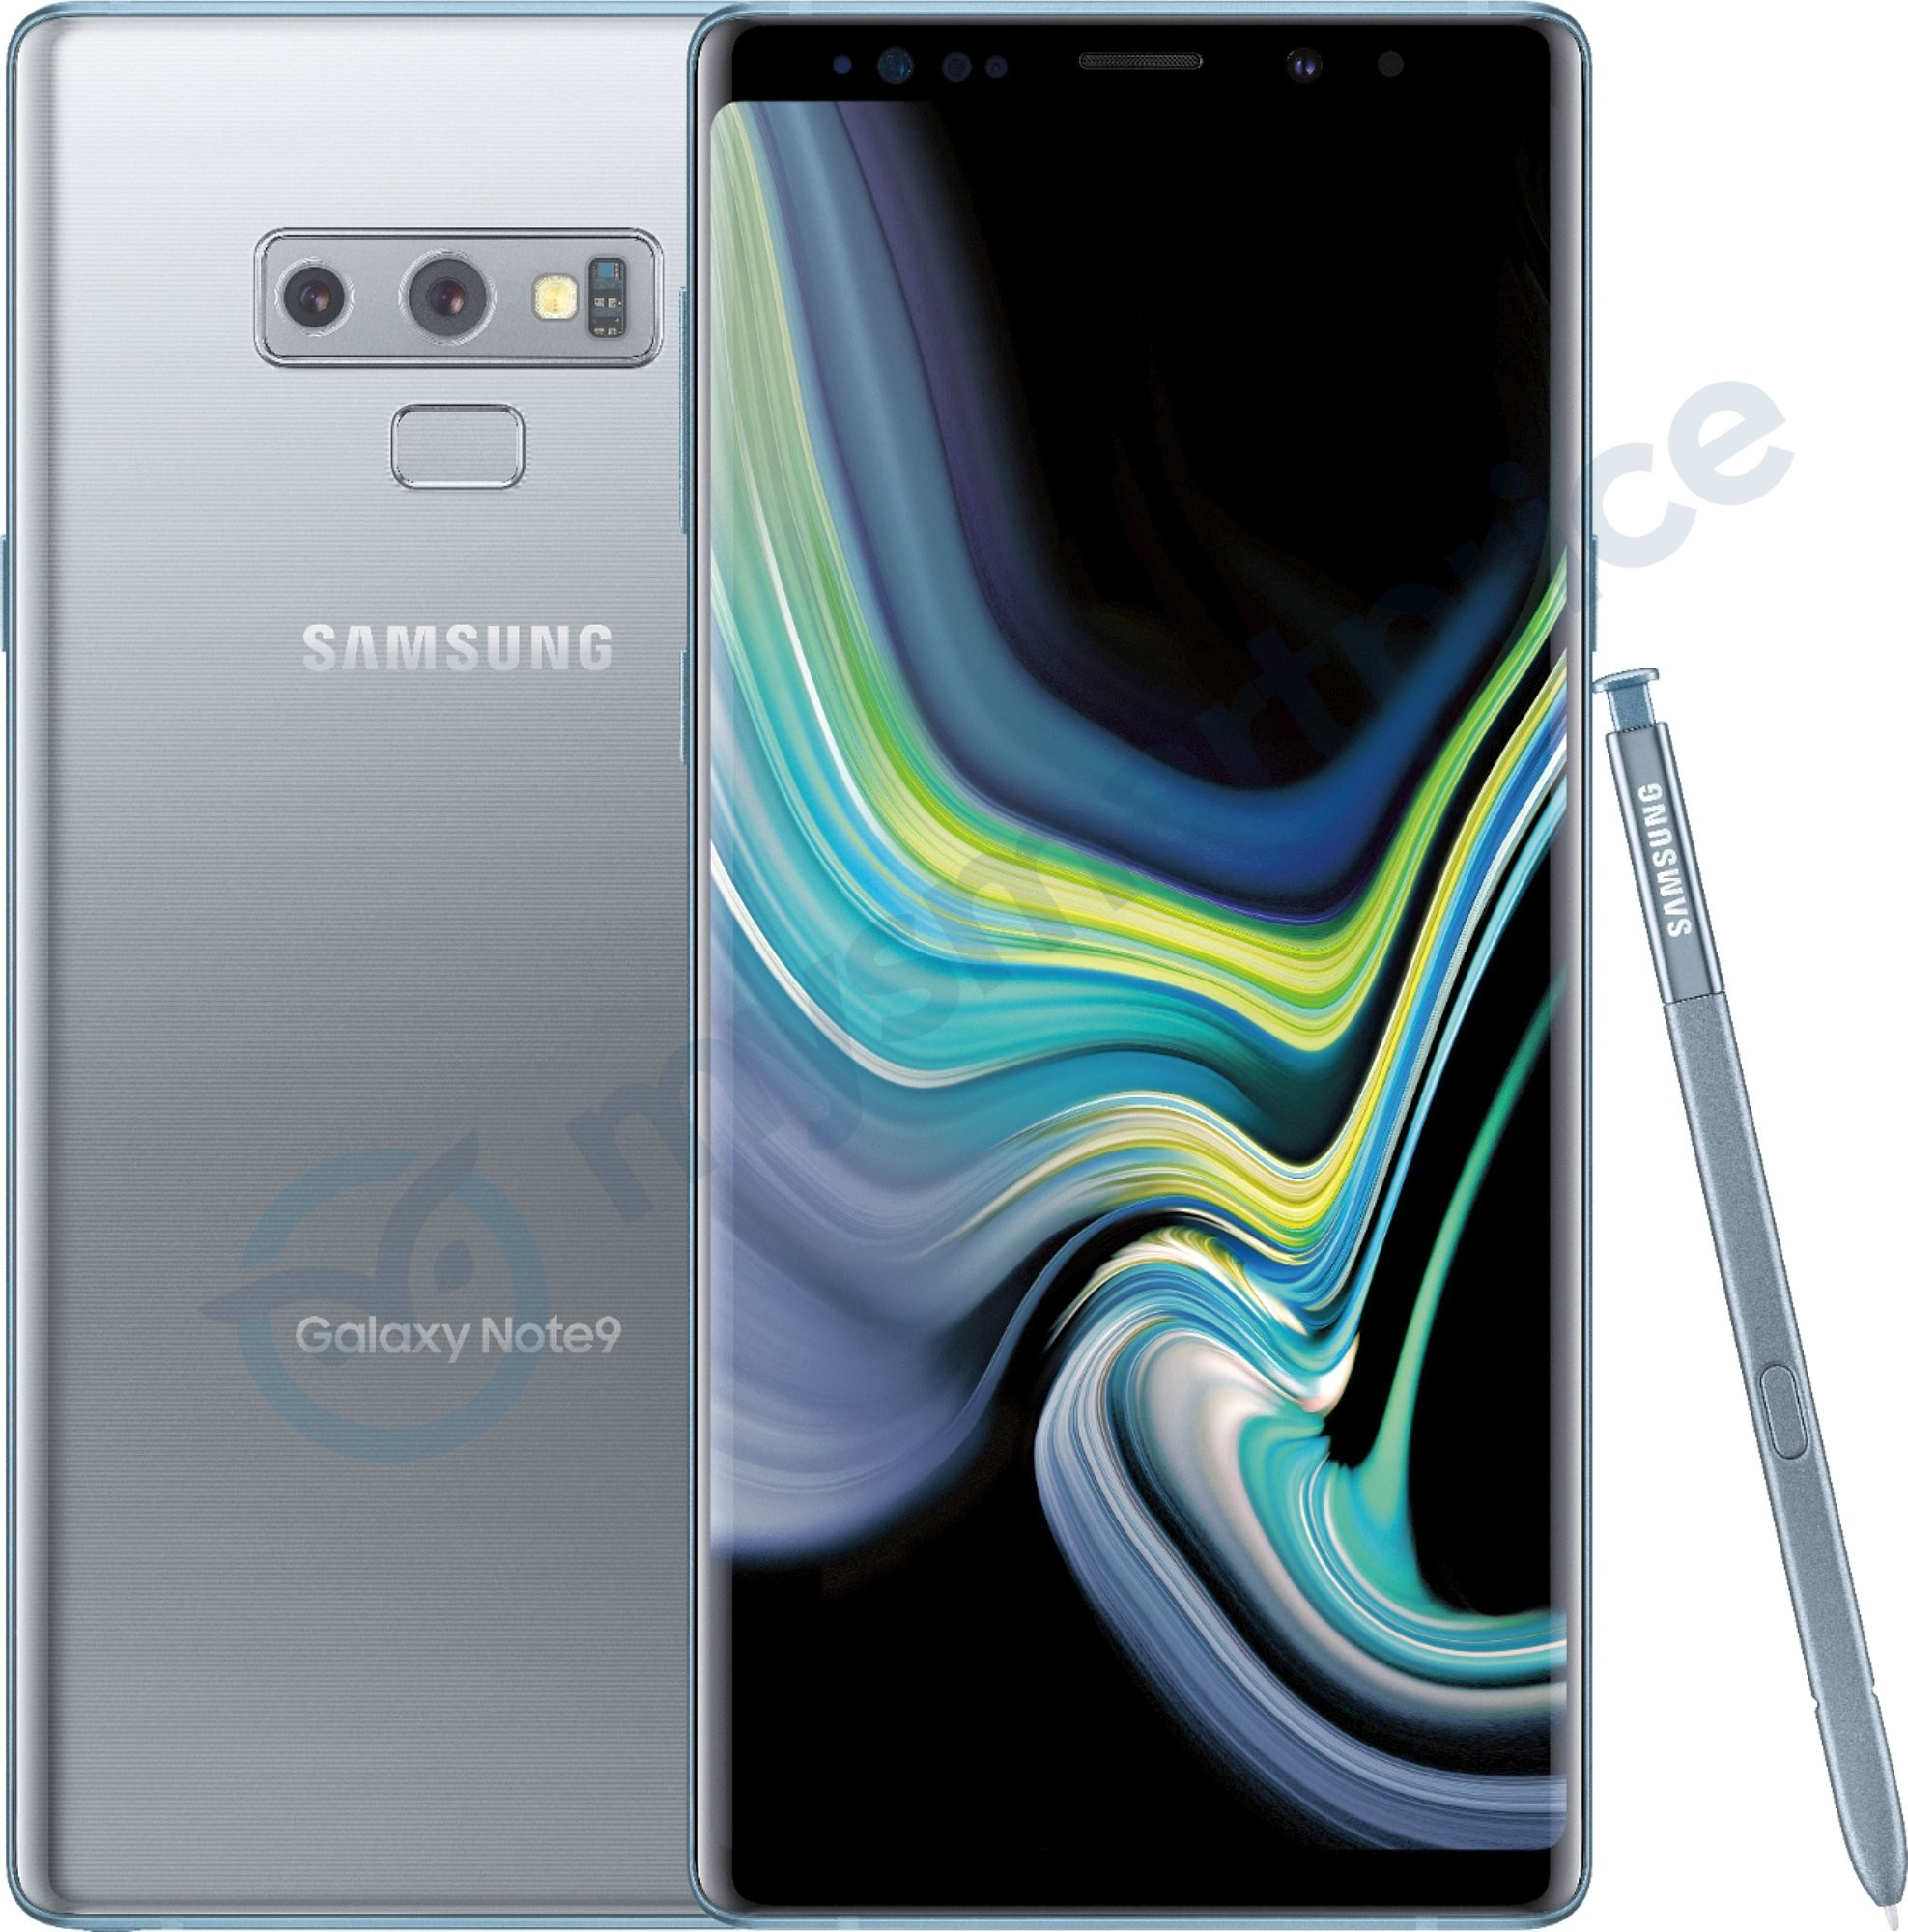 Samsung Galaxy S10 Variant to Feature 5 Cameras